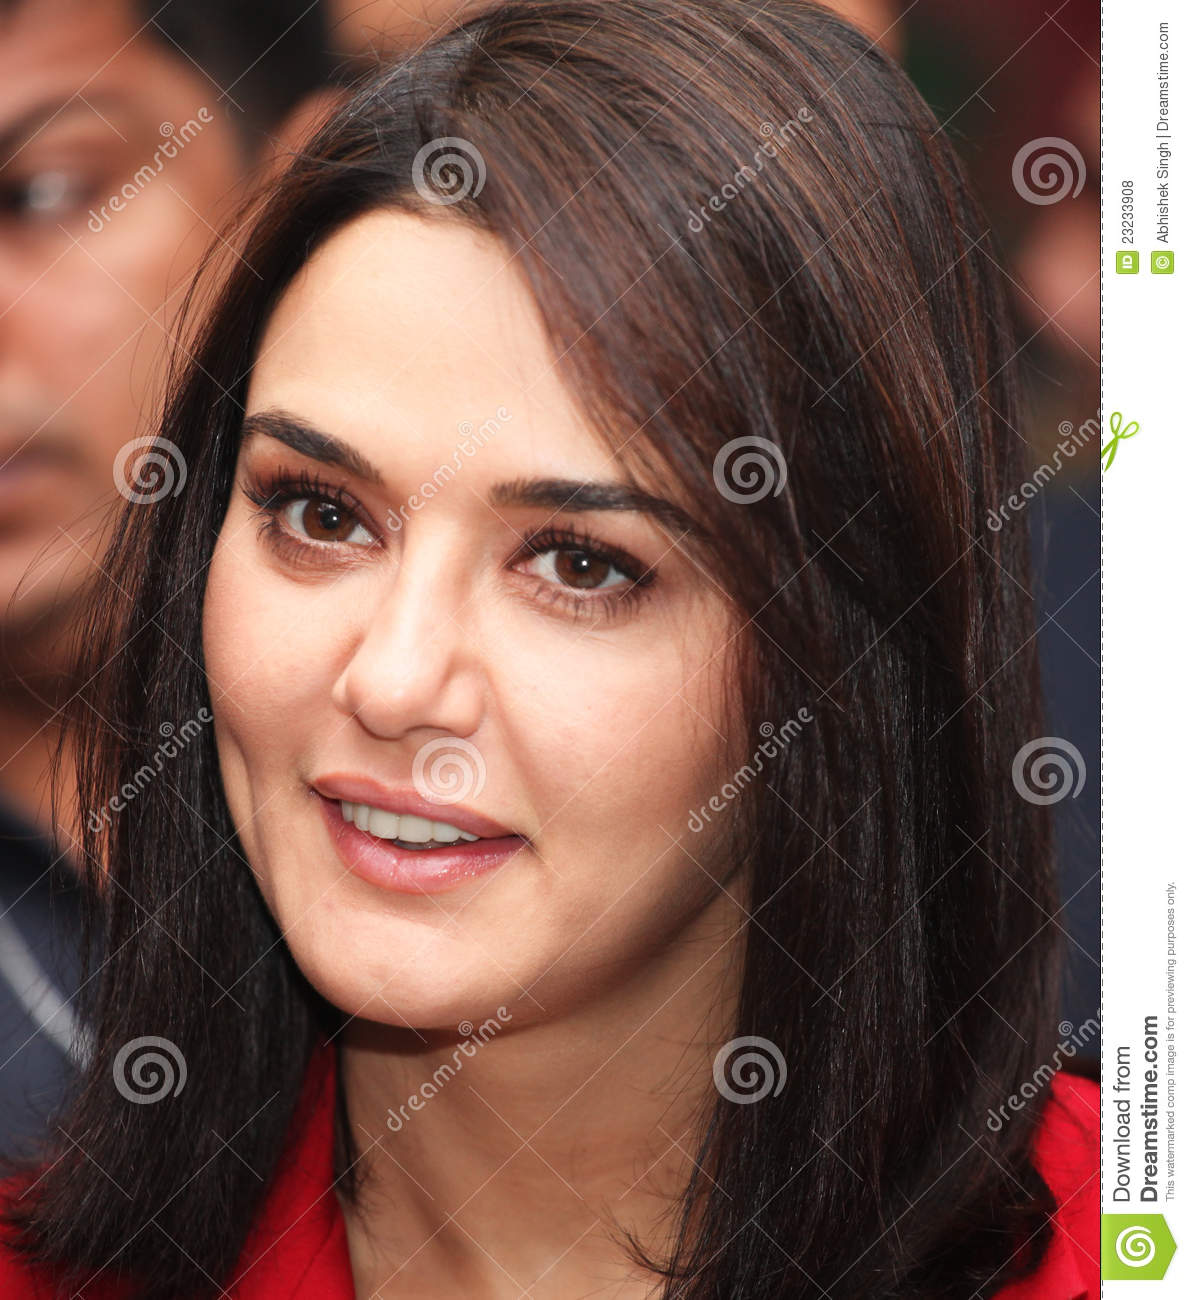 That preity zinta bollywood actress matchless